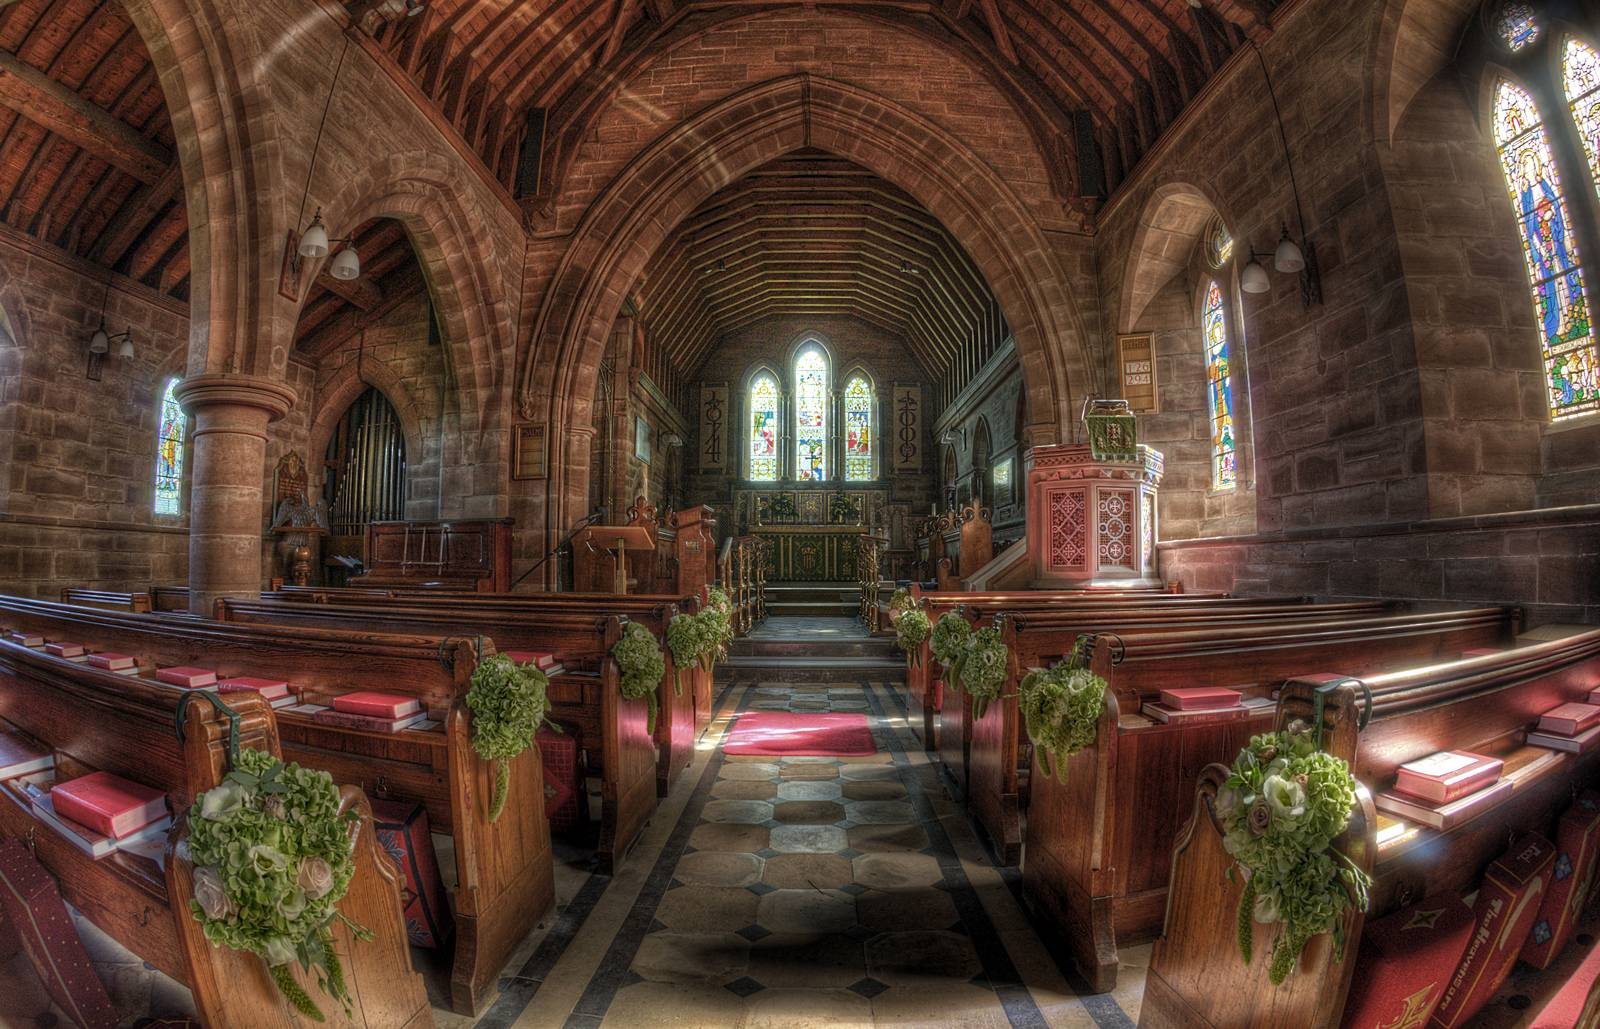 Aisle to Altar